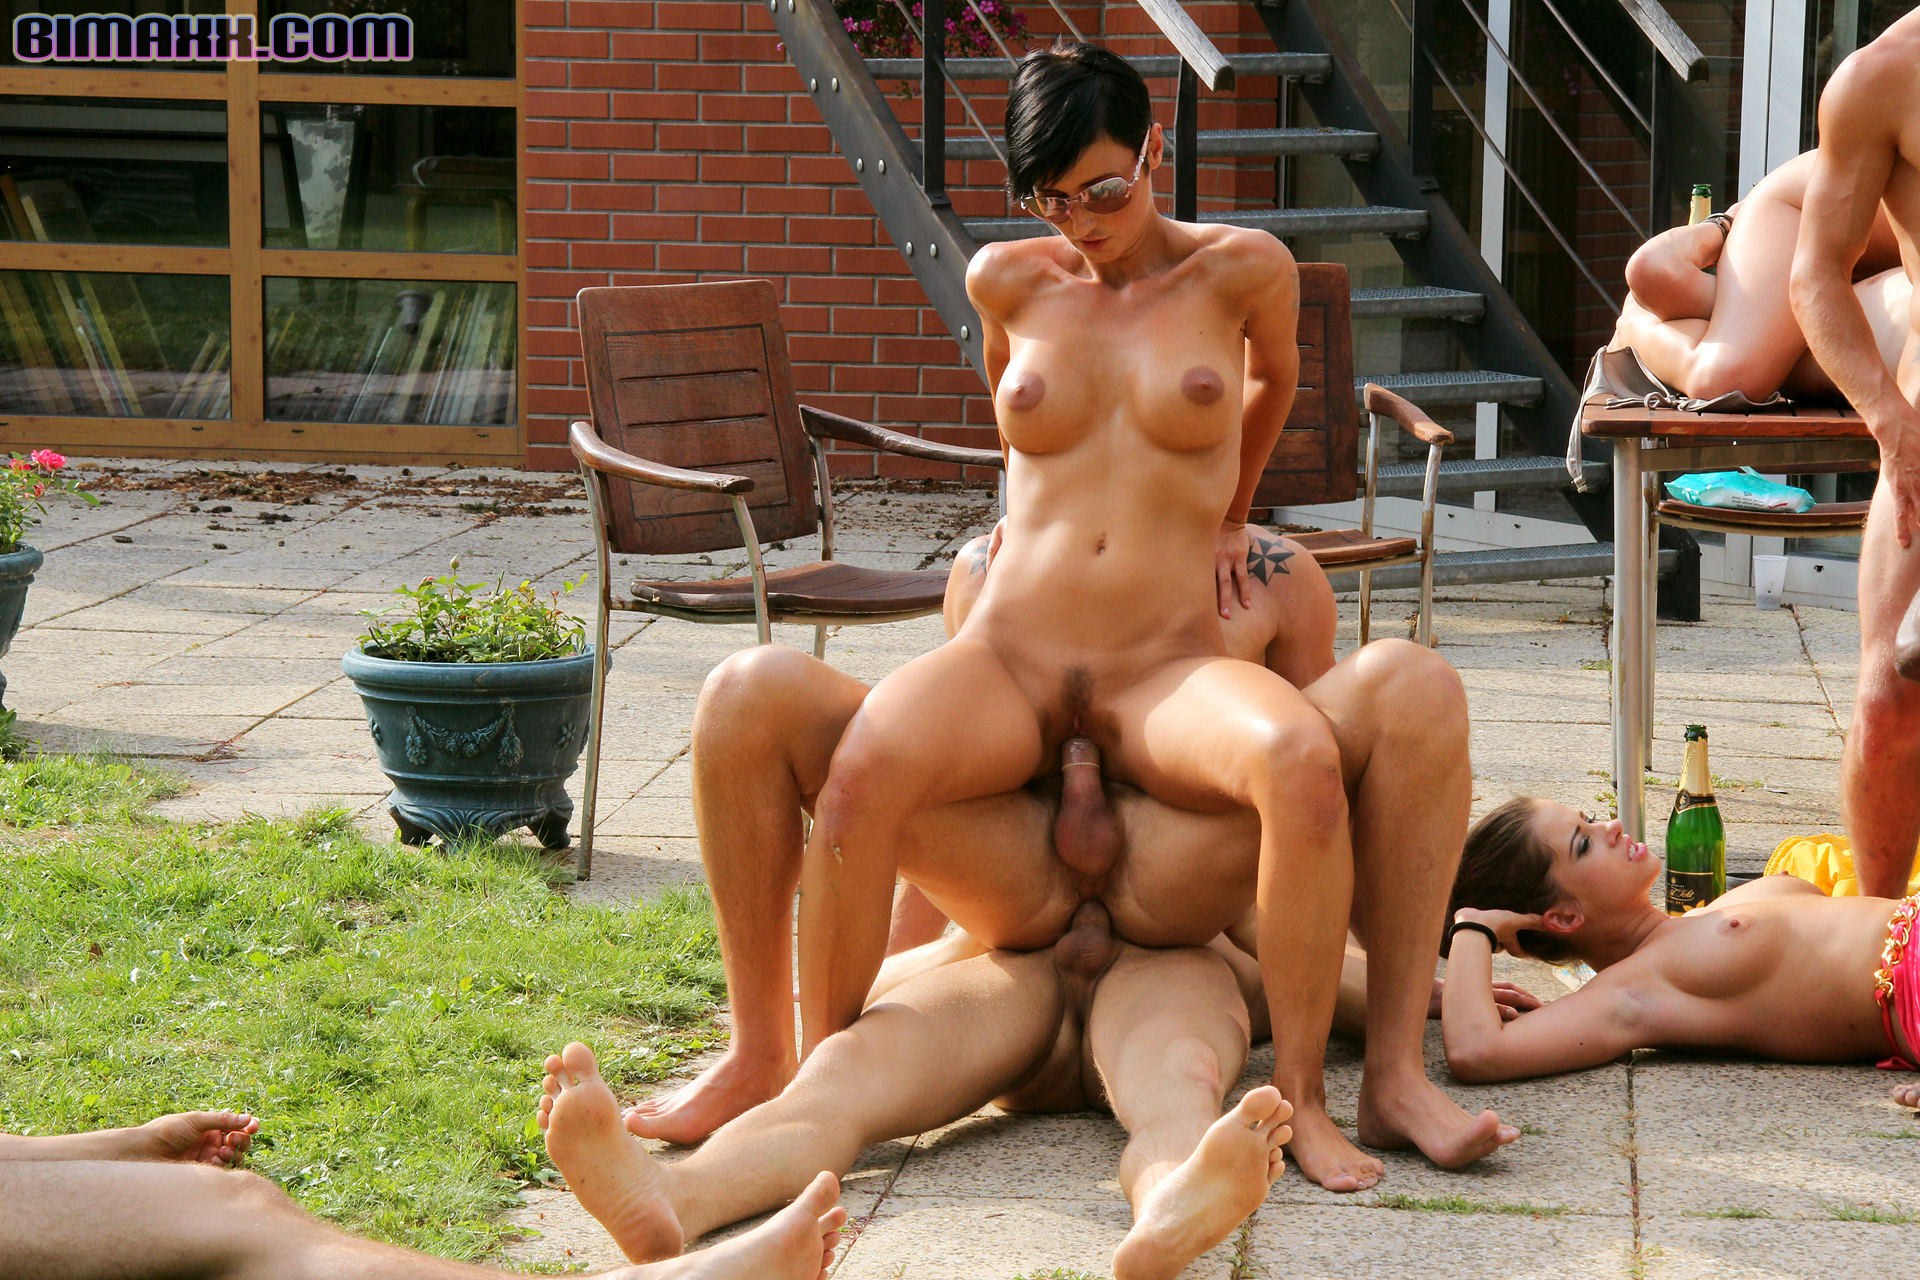 out door orgy videos for sex